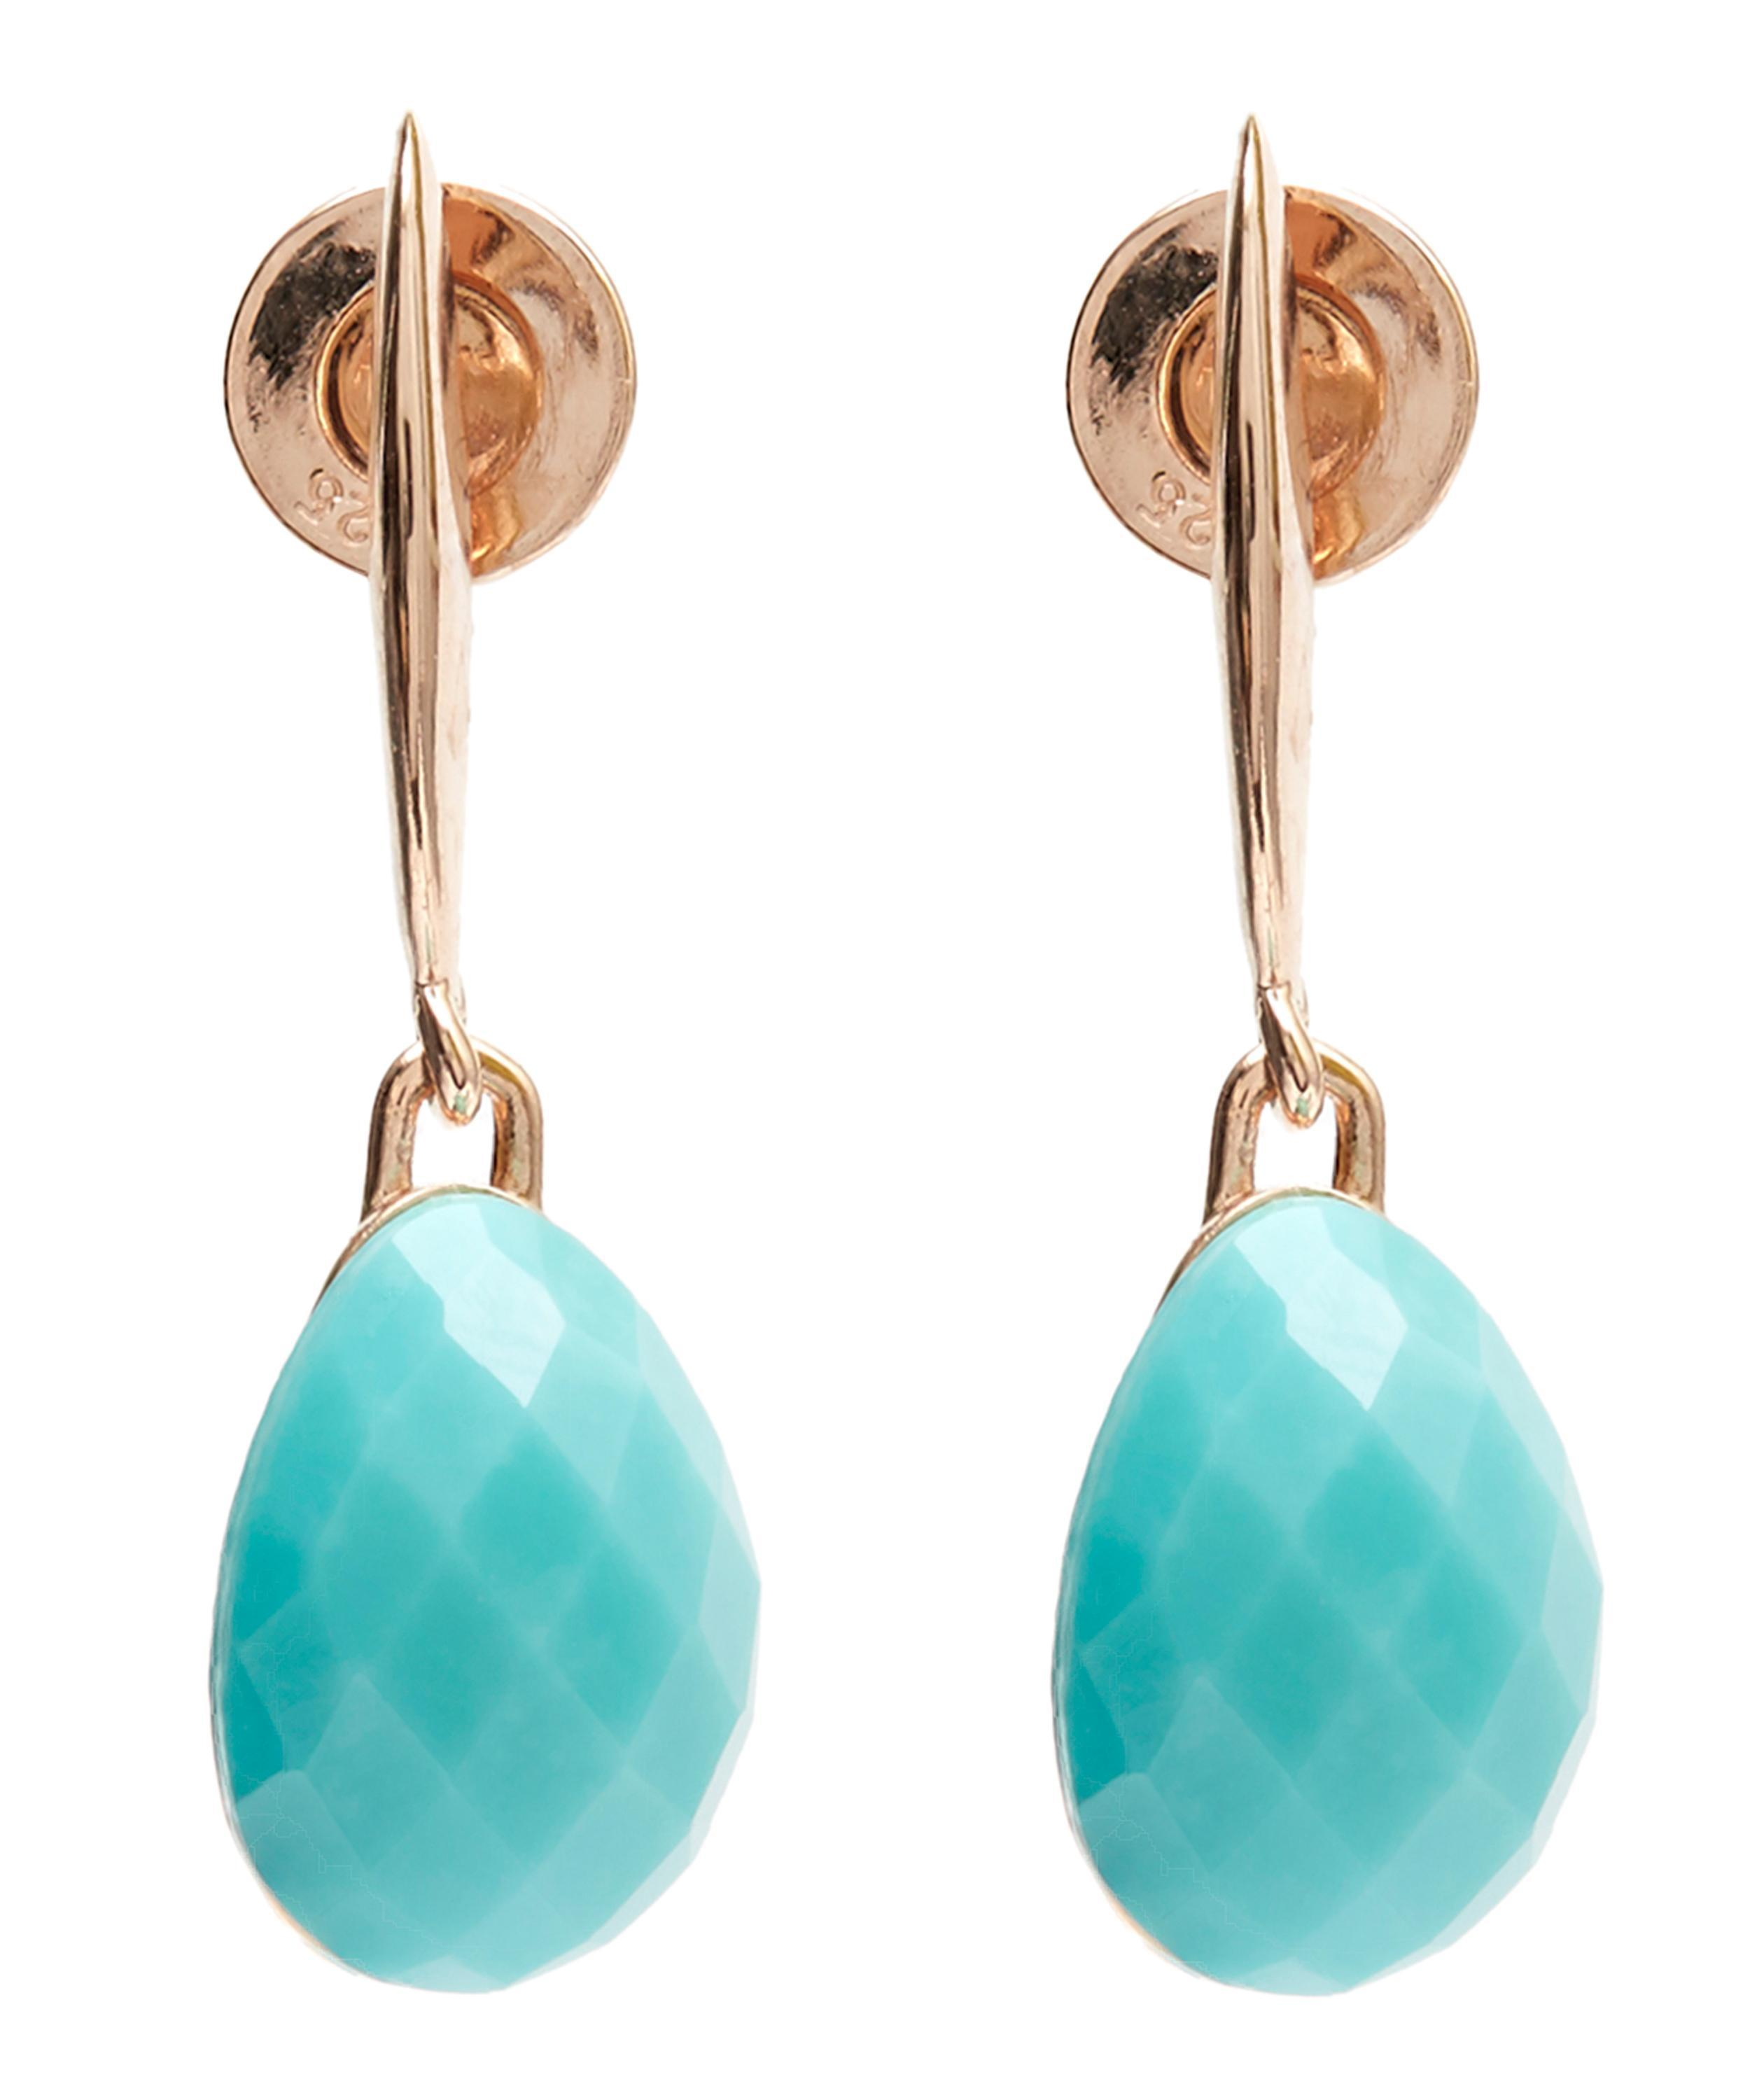 Nura Nugget Rose Gold Vermeil Turquoise Earrings - one size Monica Vinader DHV3nQ0me